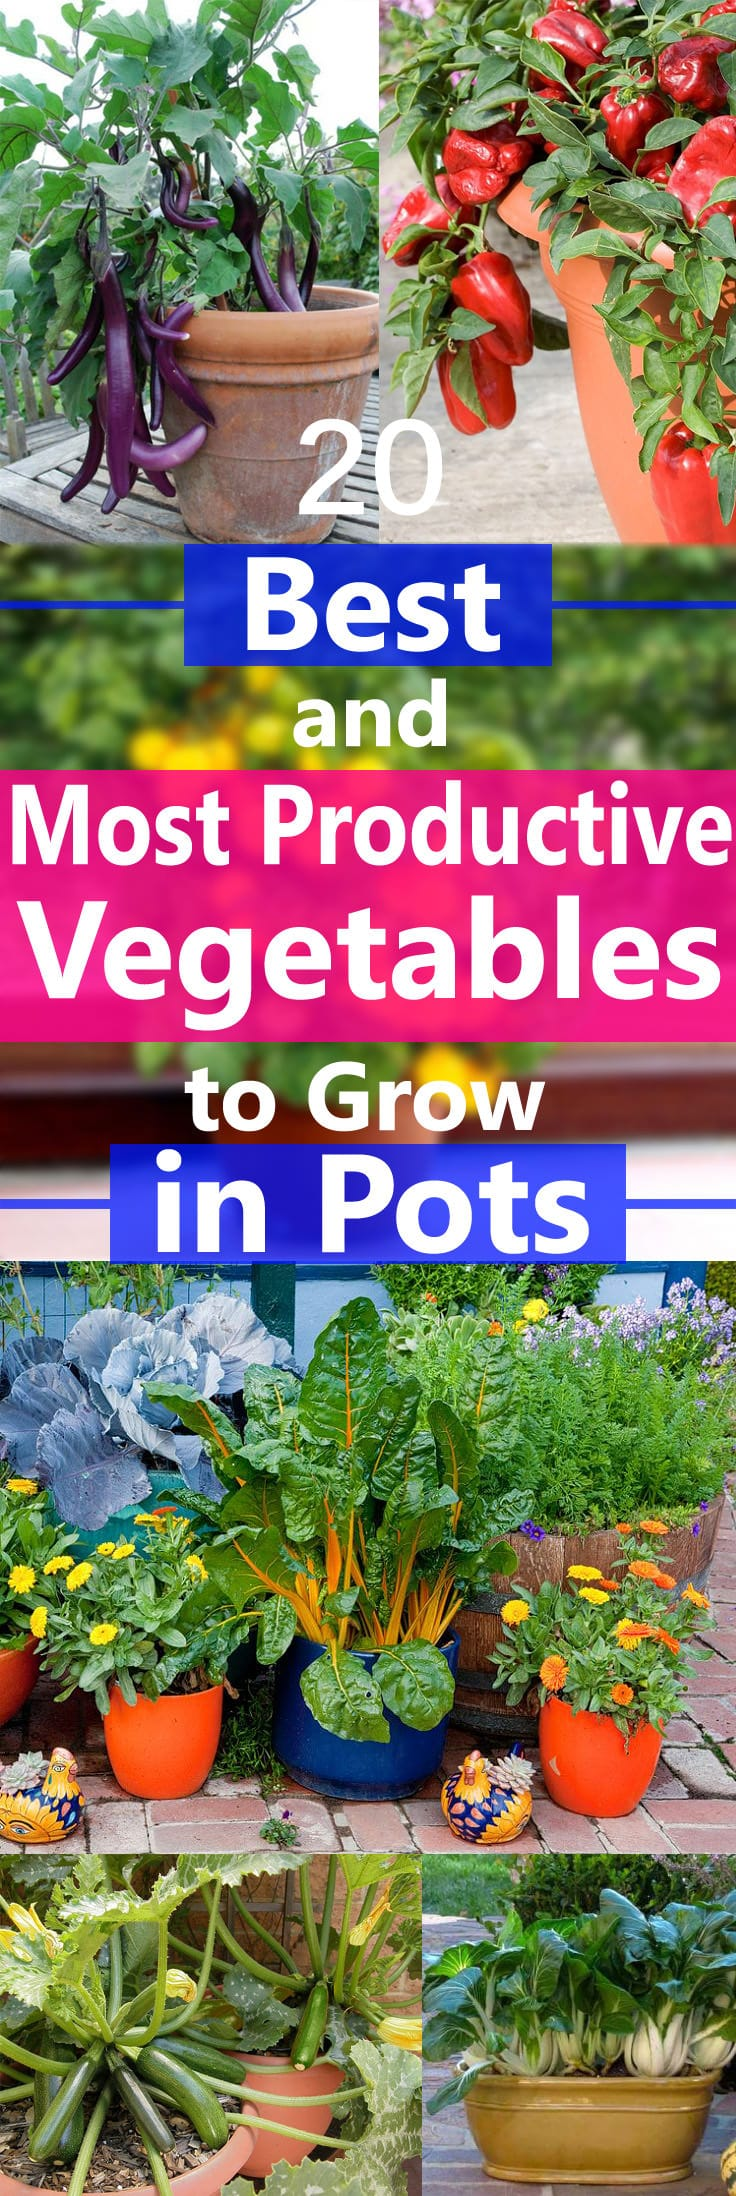 Growing ve ables in containers is possible but there are some that grow easily and produce heavily